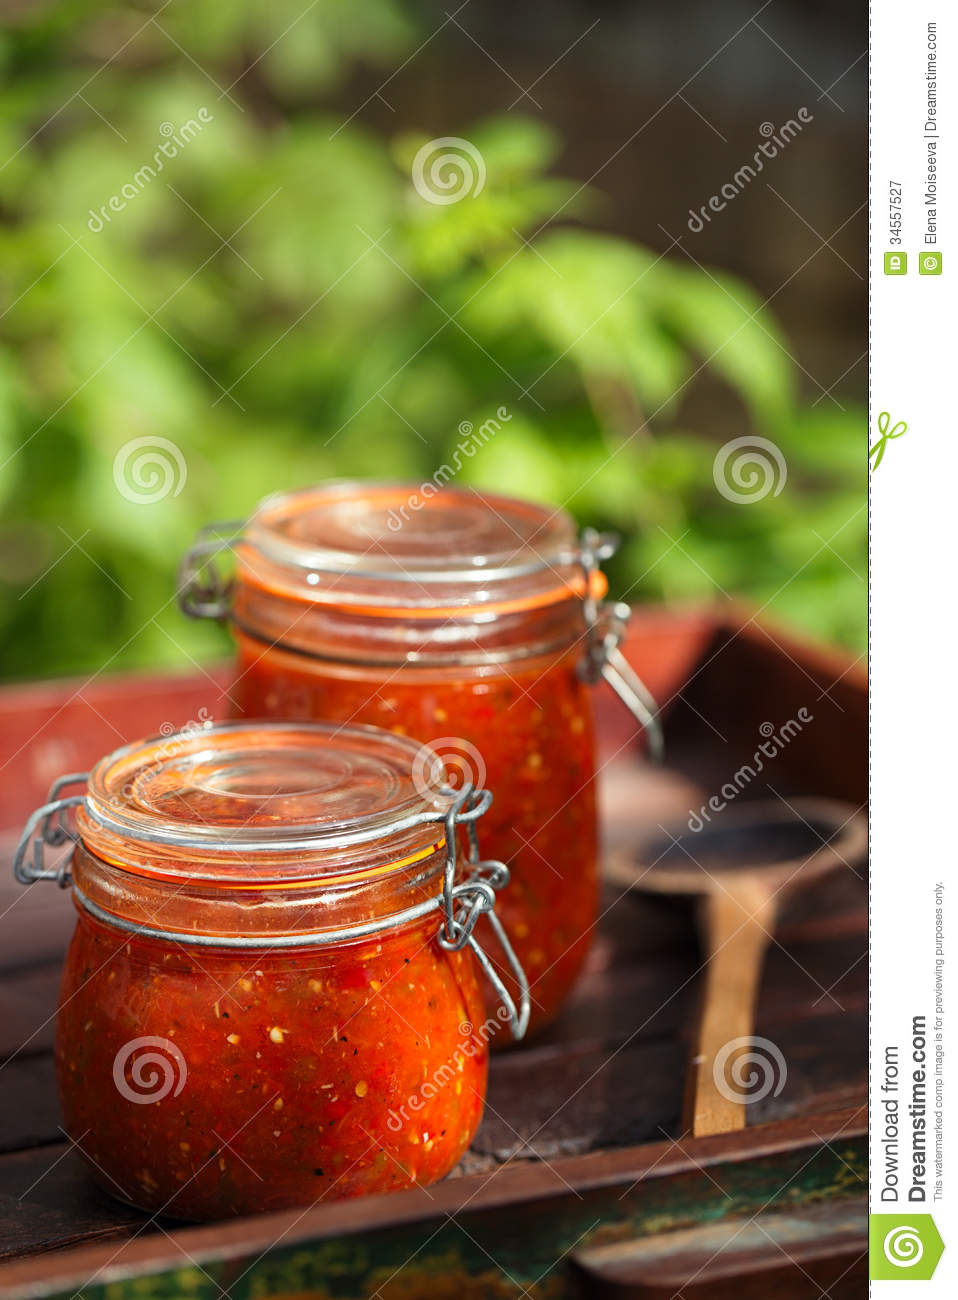 how to open salsa jar